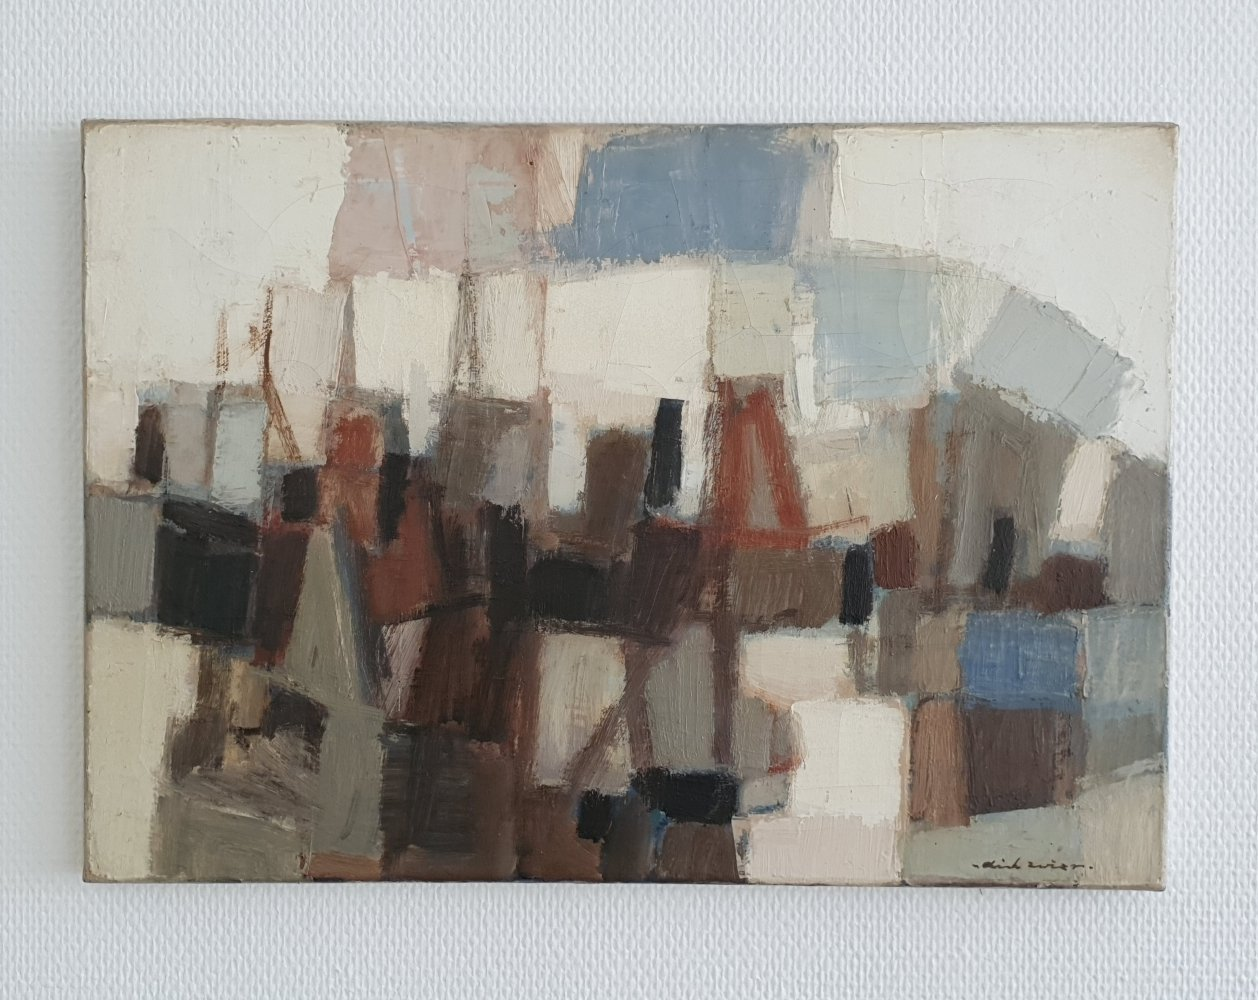 1960s Abstract painting Oil on canvas by Dick Zwier